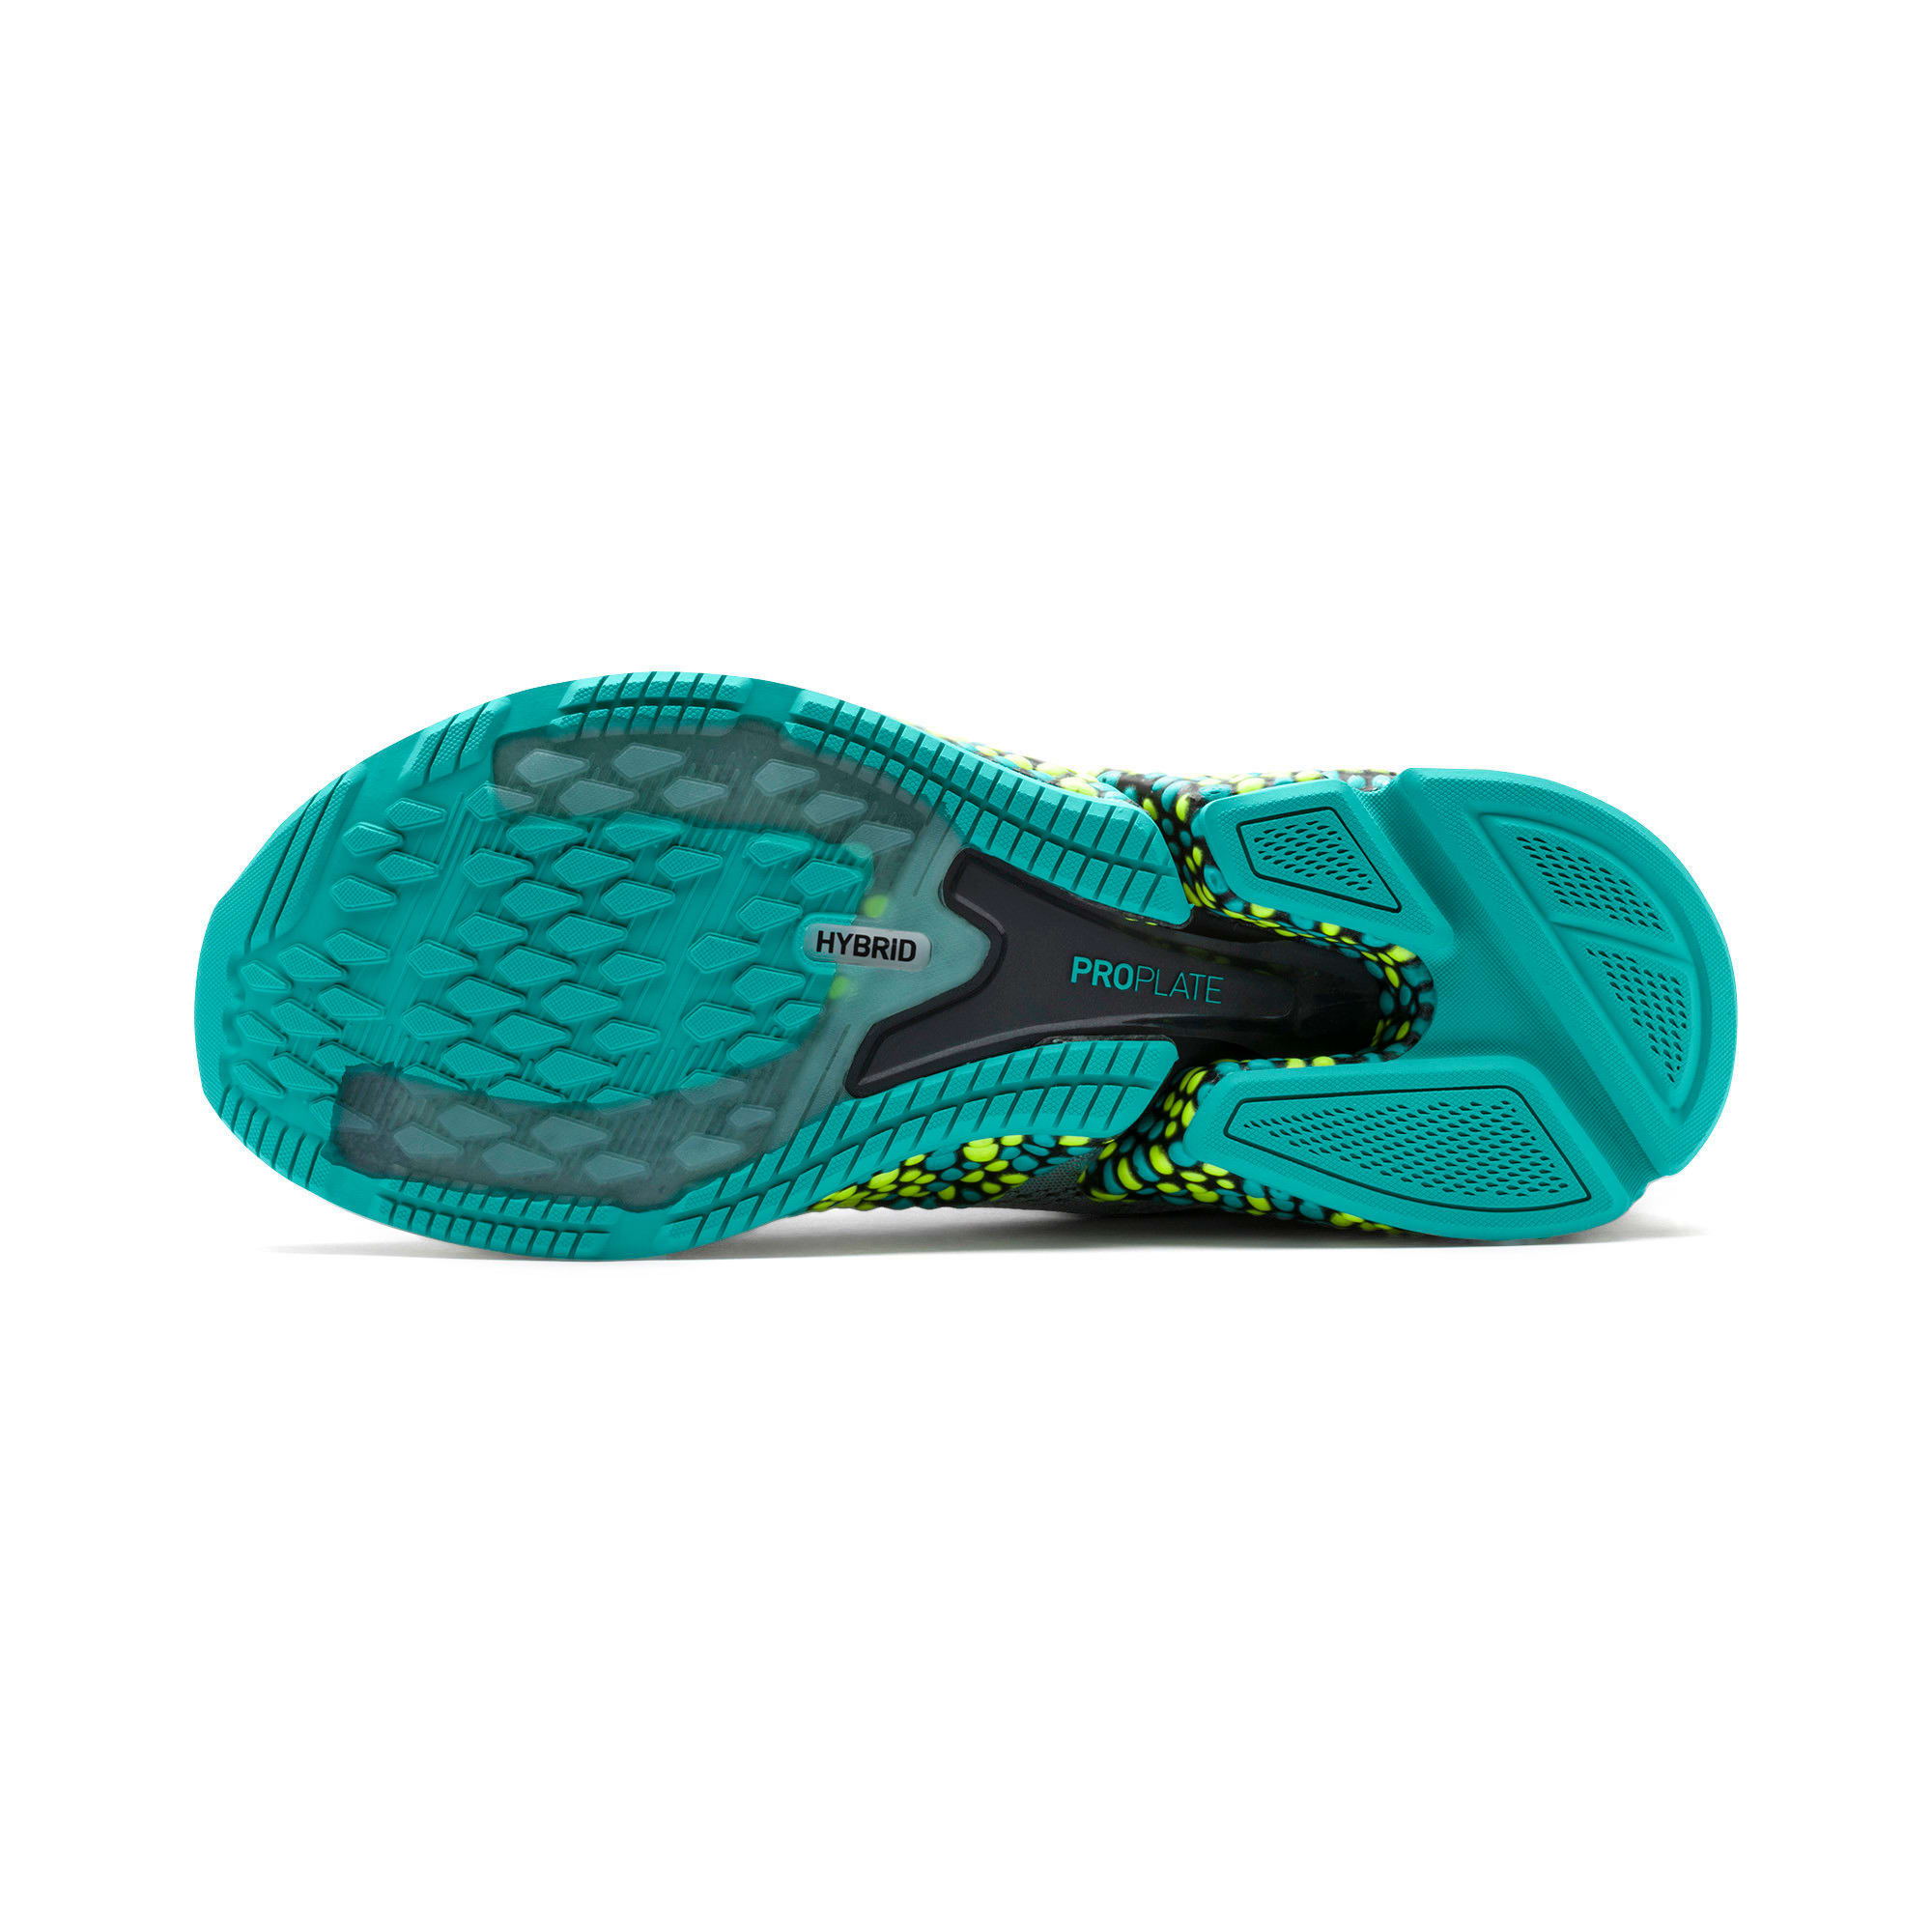 Thumbnail 5 of SPEED Orbiter Men's Running Shoes, High Rise-Blue Turquoise, medium